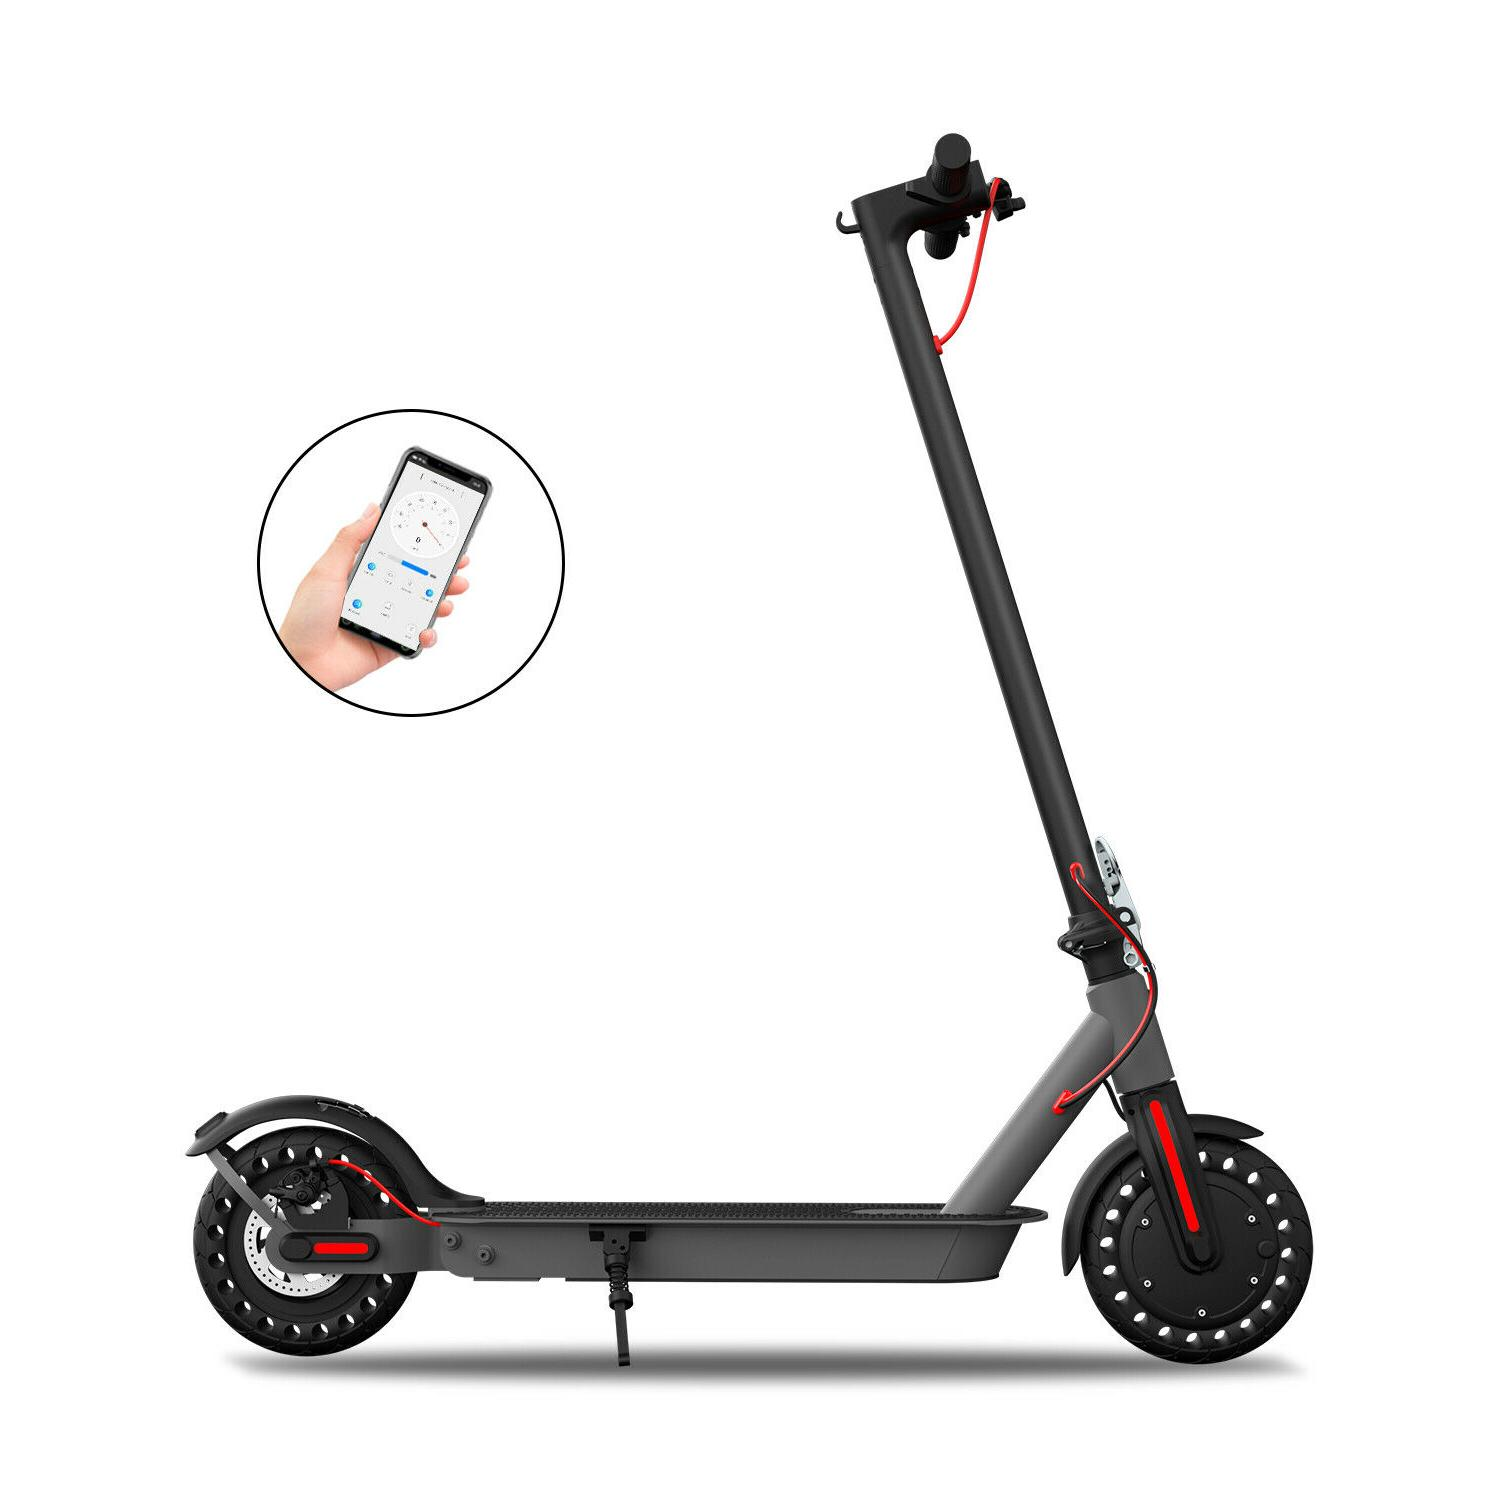 hiboy s2 electric scooter folding 17 miles